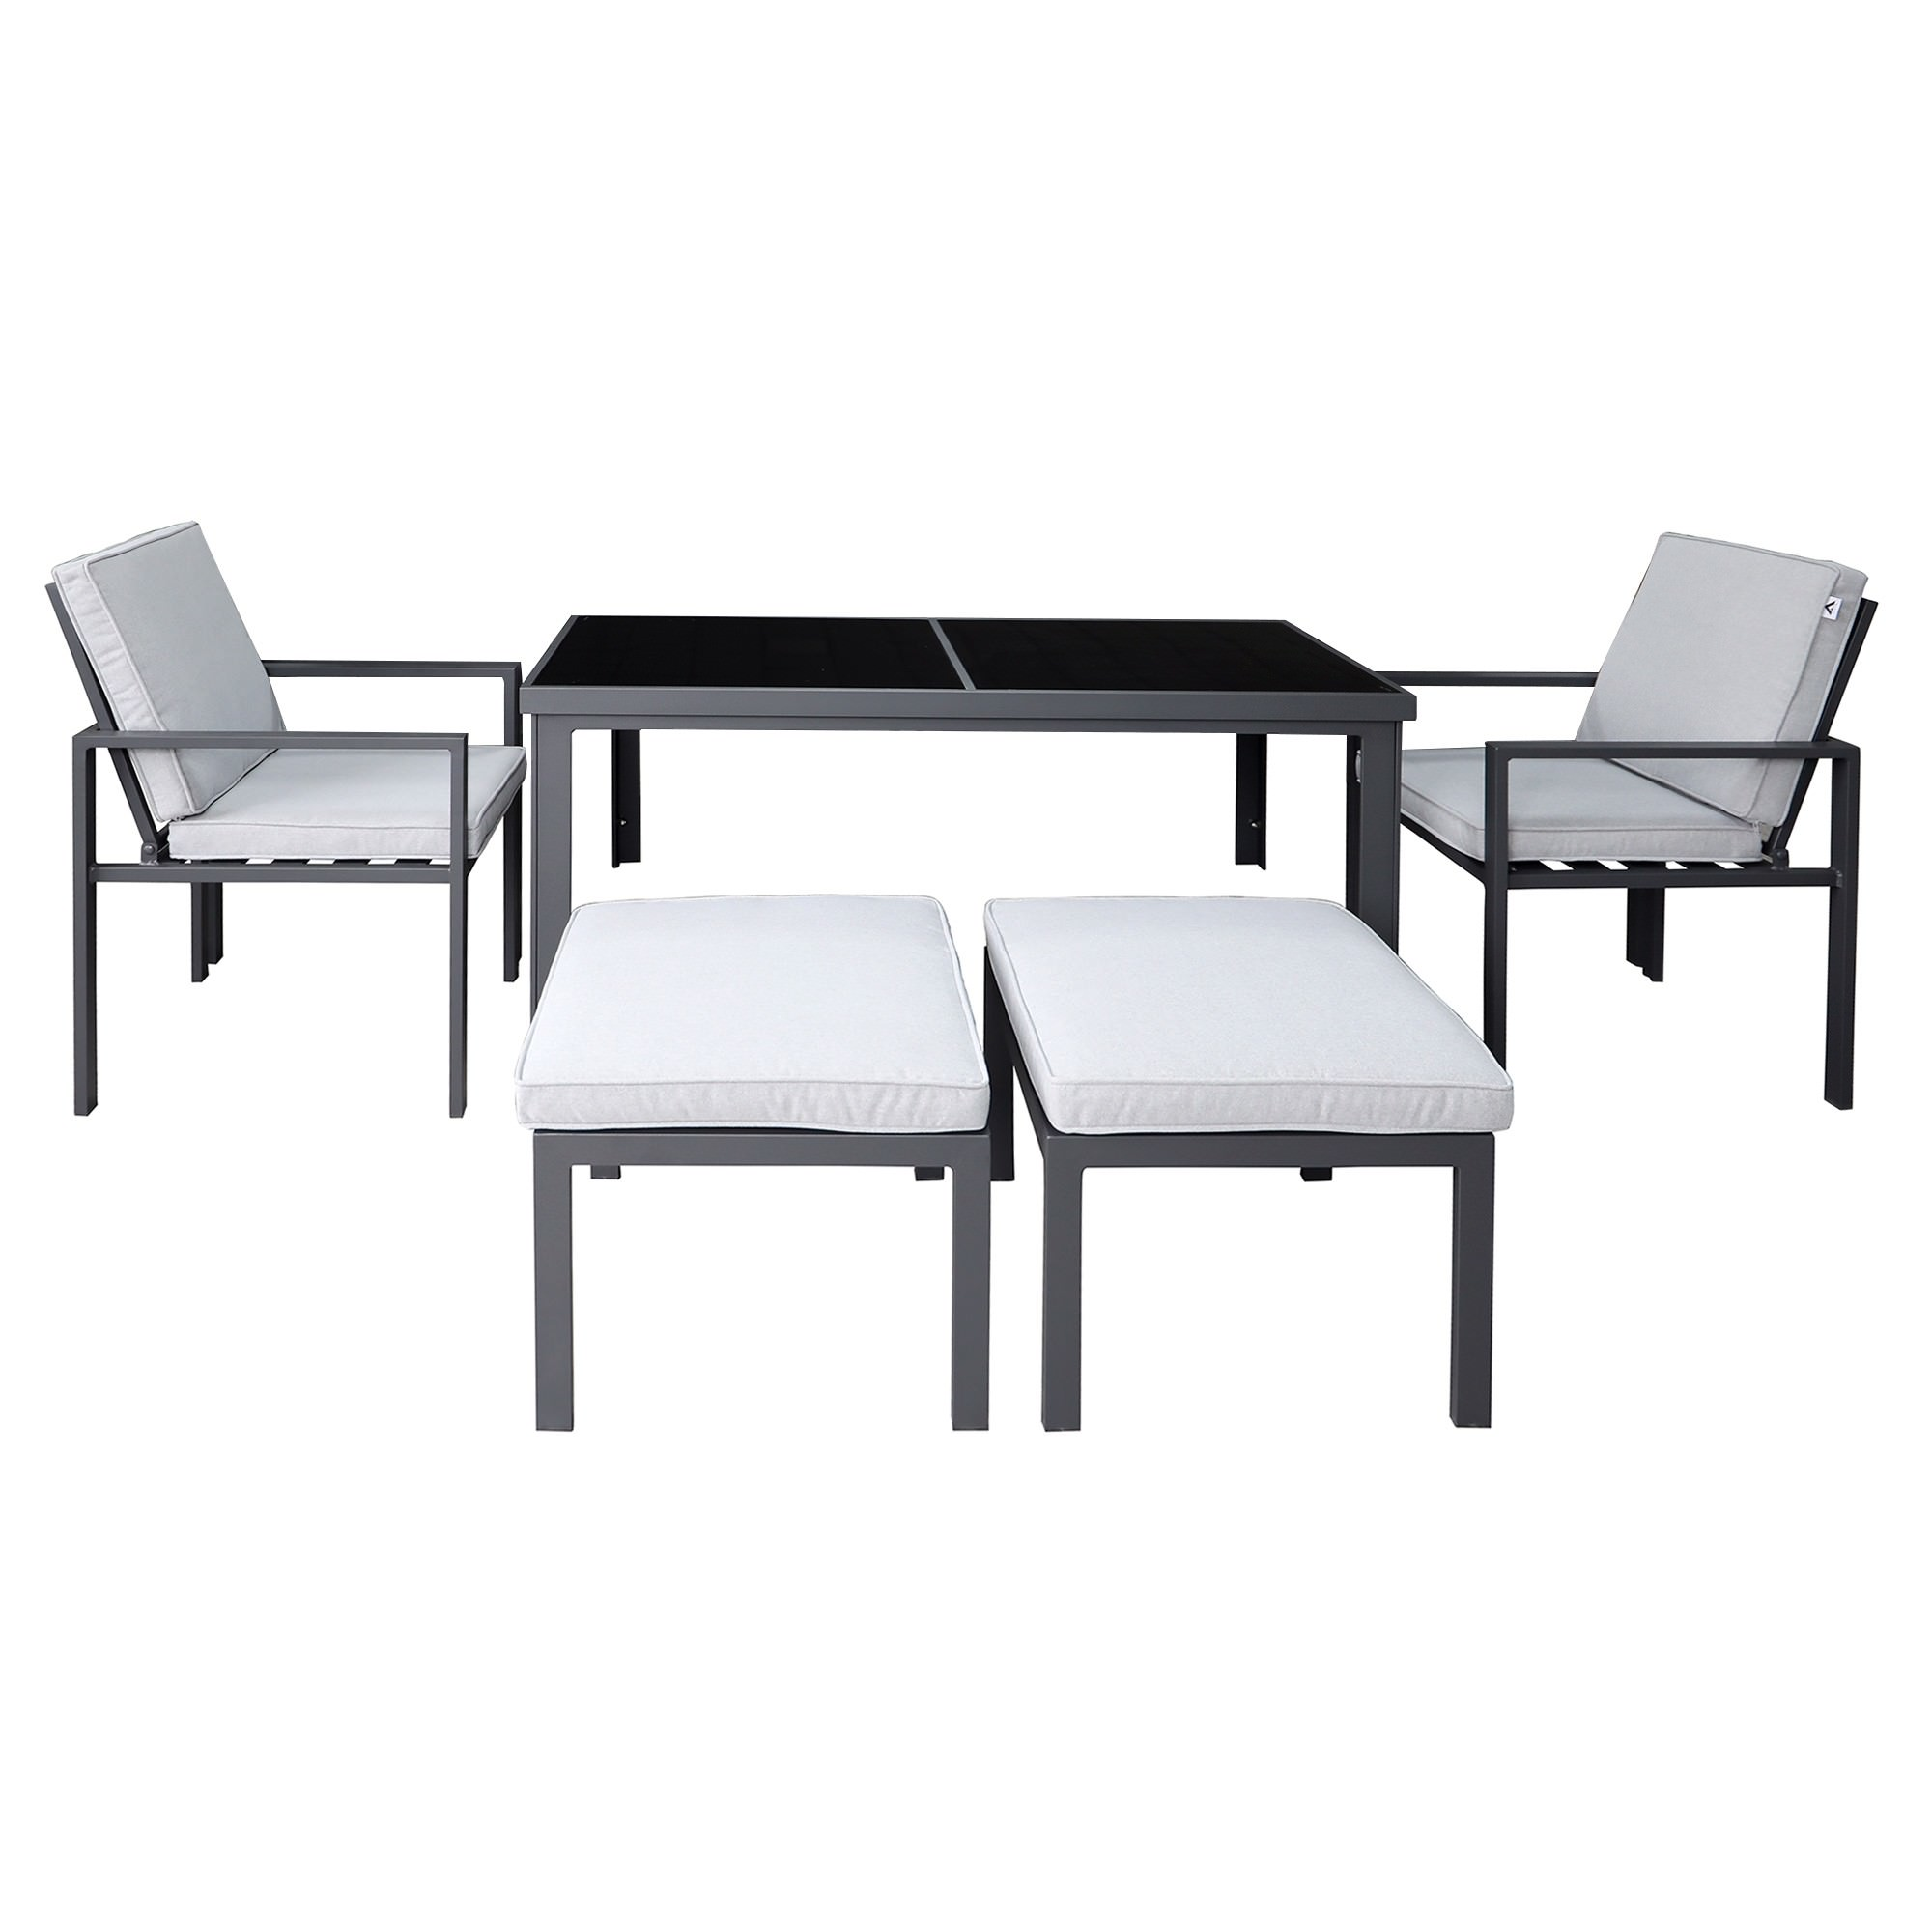 Roxburgh 5 Piece Outdoor Dining Table Set, Gunmetal